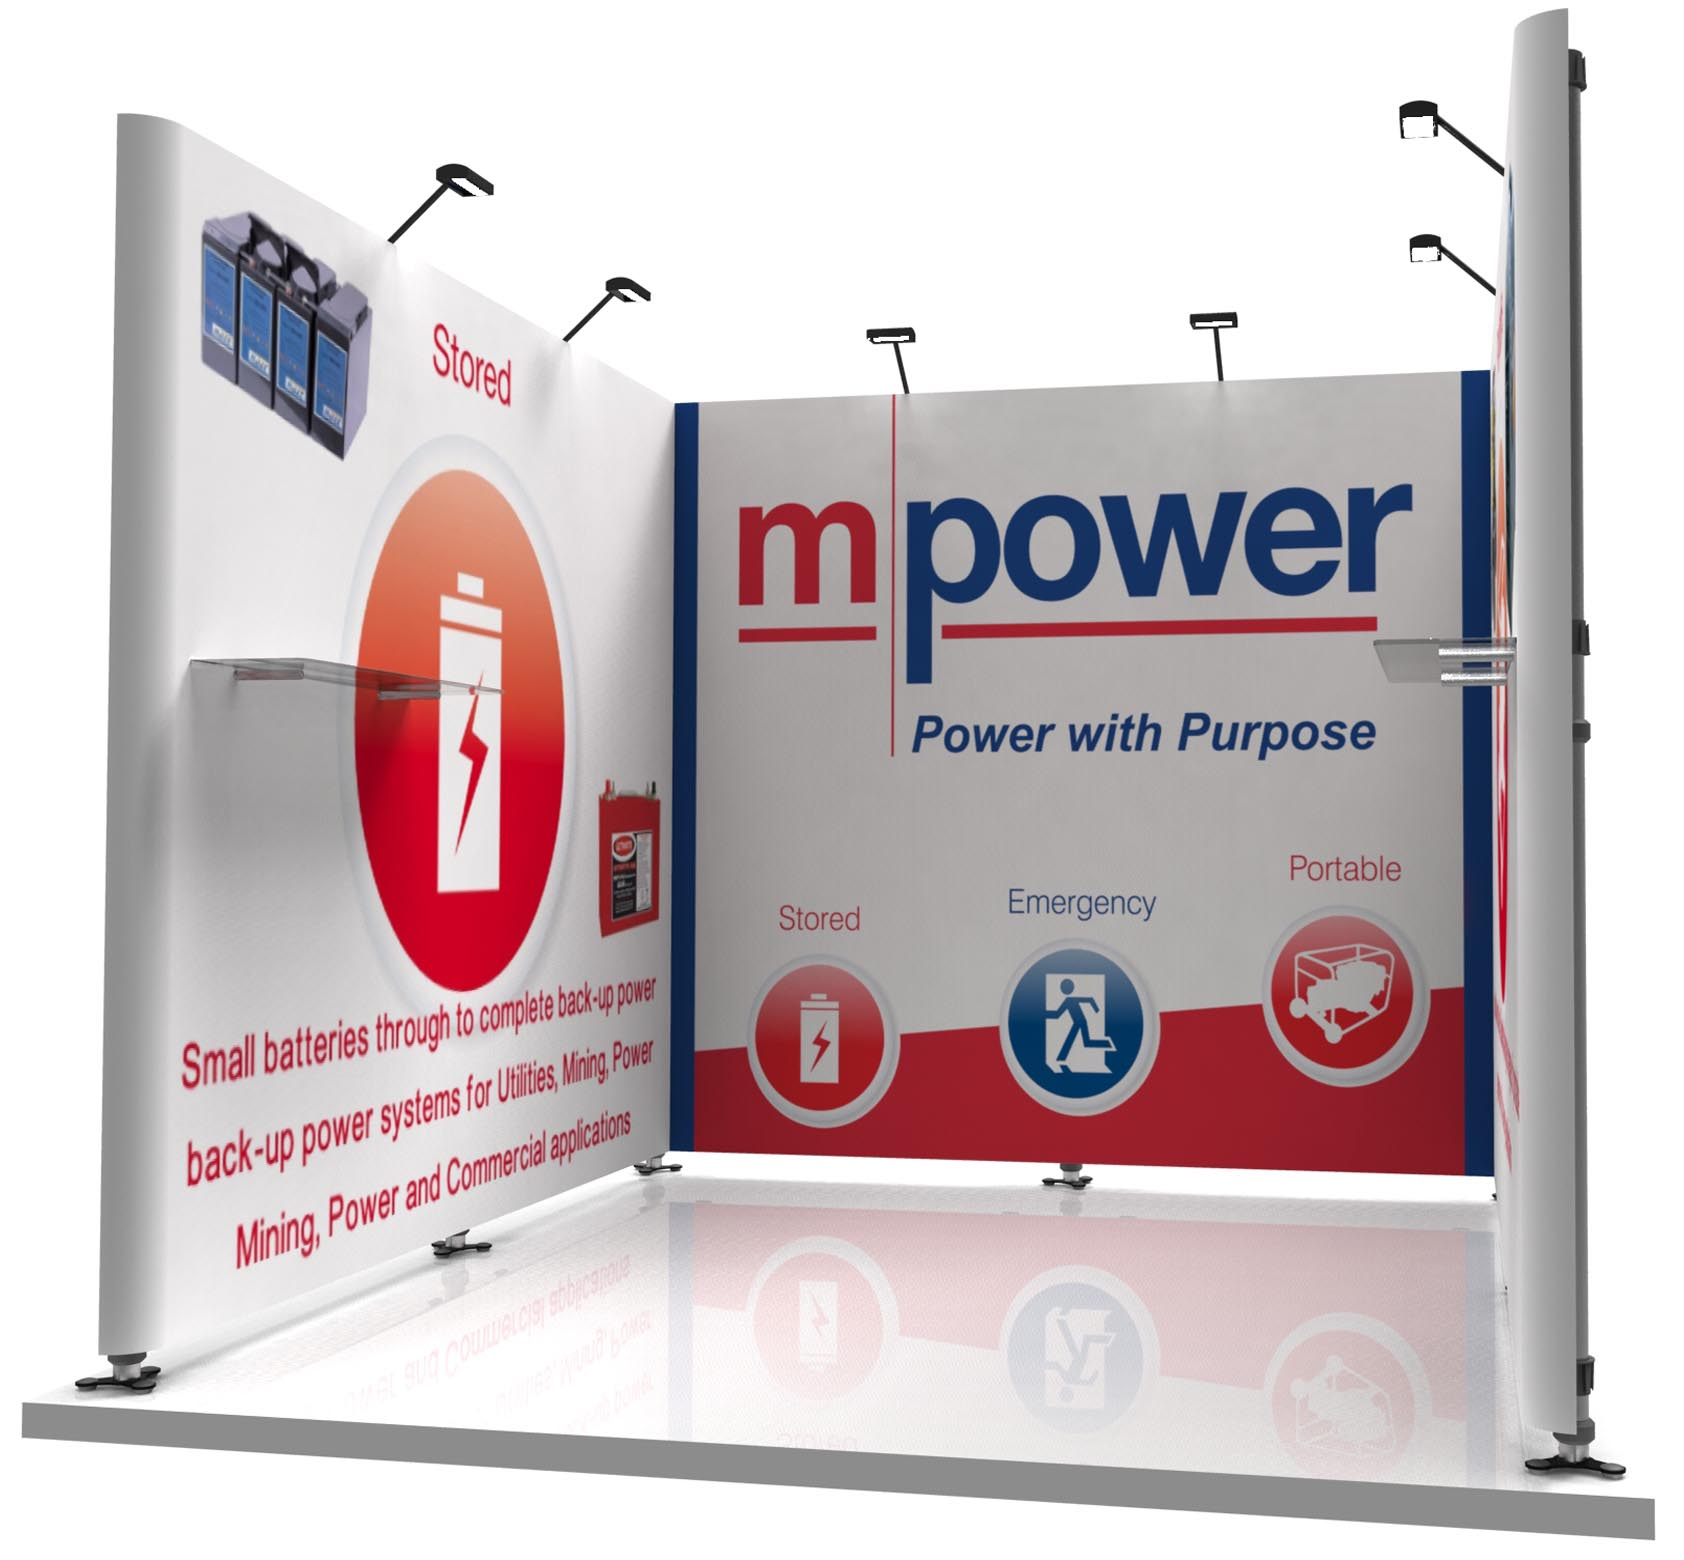 Exhibition Booth Banners : Nvp — exhibit exhibition design hire